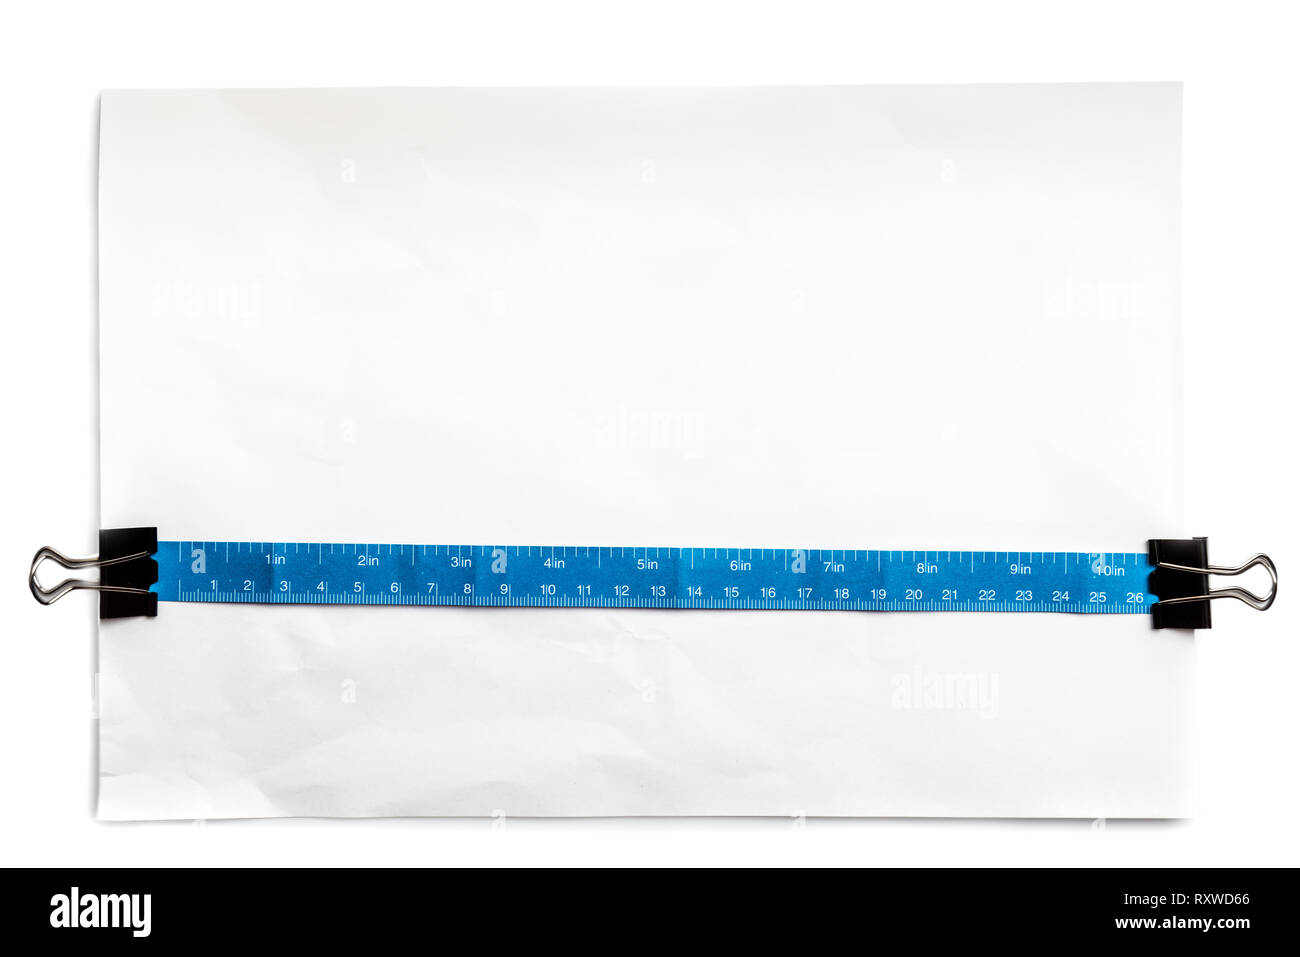 Simple paper tape measure inch and centimeter, over standart office white paper. Usefull for show object real size. - Stock Image